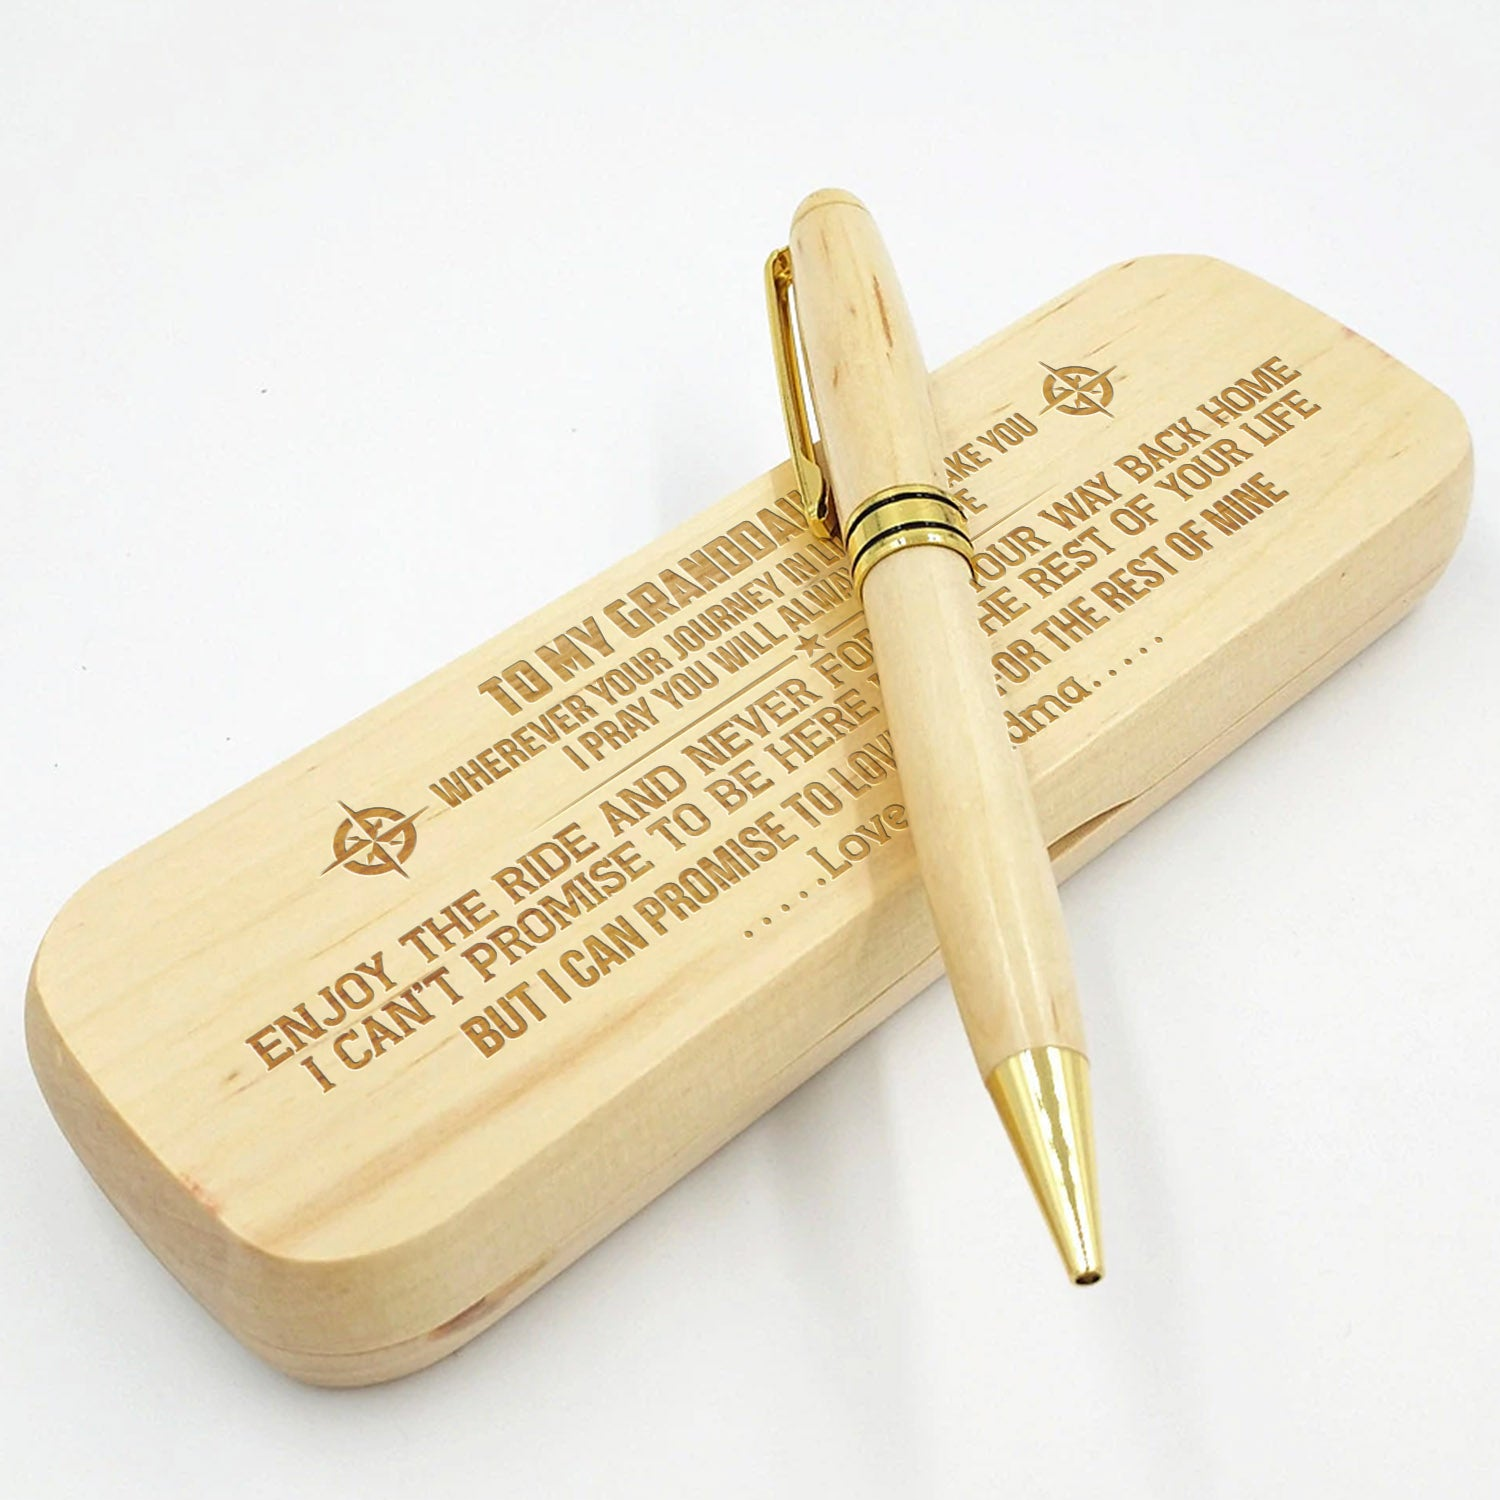 Grandma to Granddaughter - Enjoy The Ride - Engraved Wood Pen Case